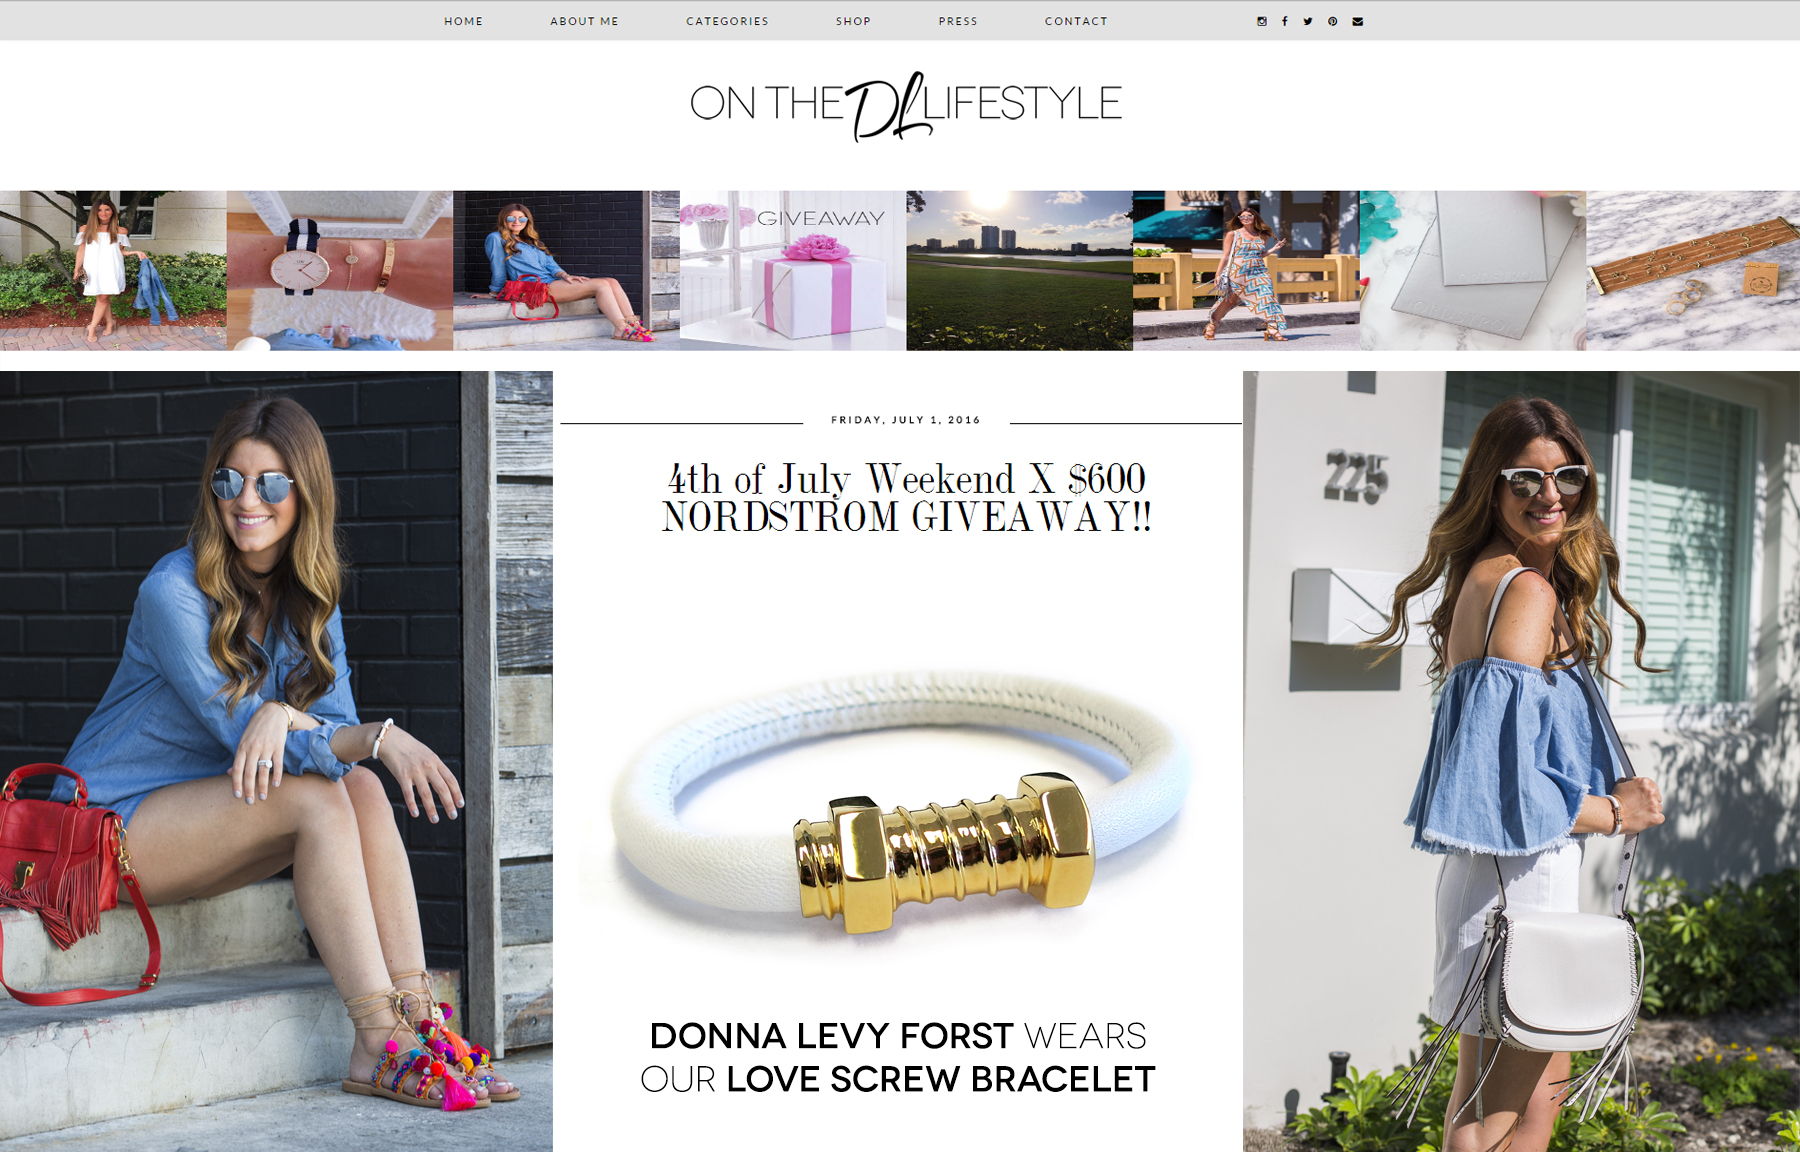 bloggers2donna-levy-forst-mh